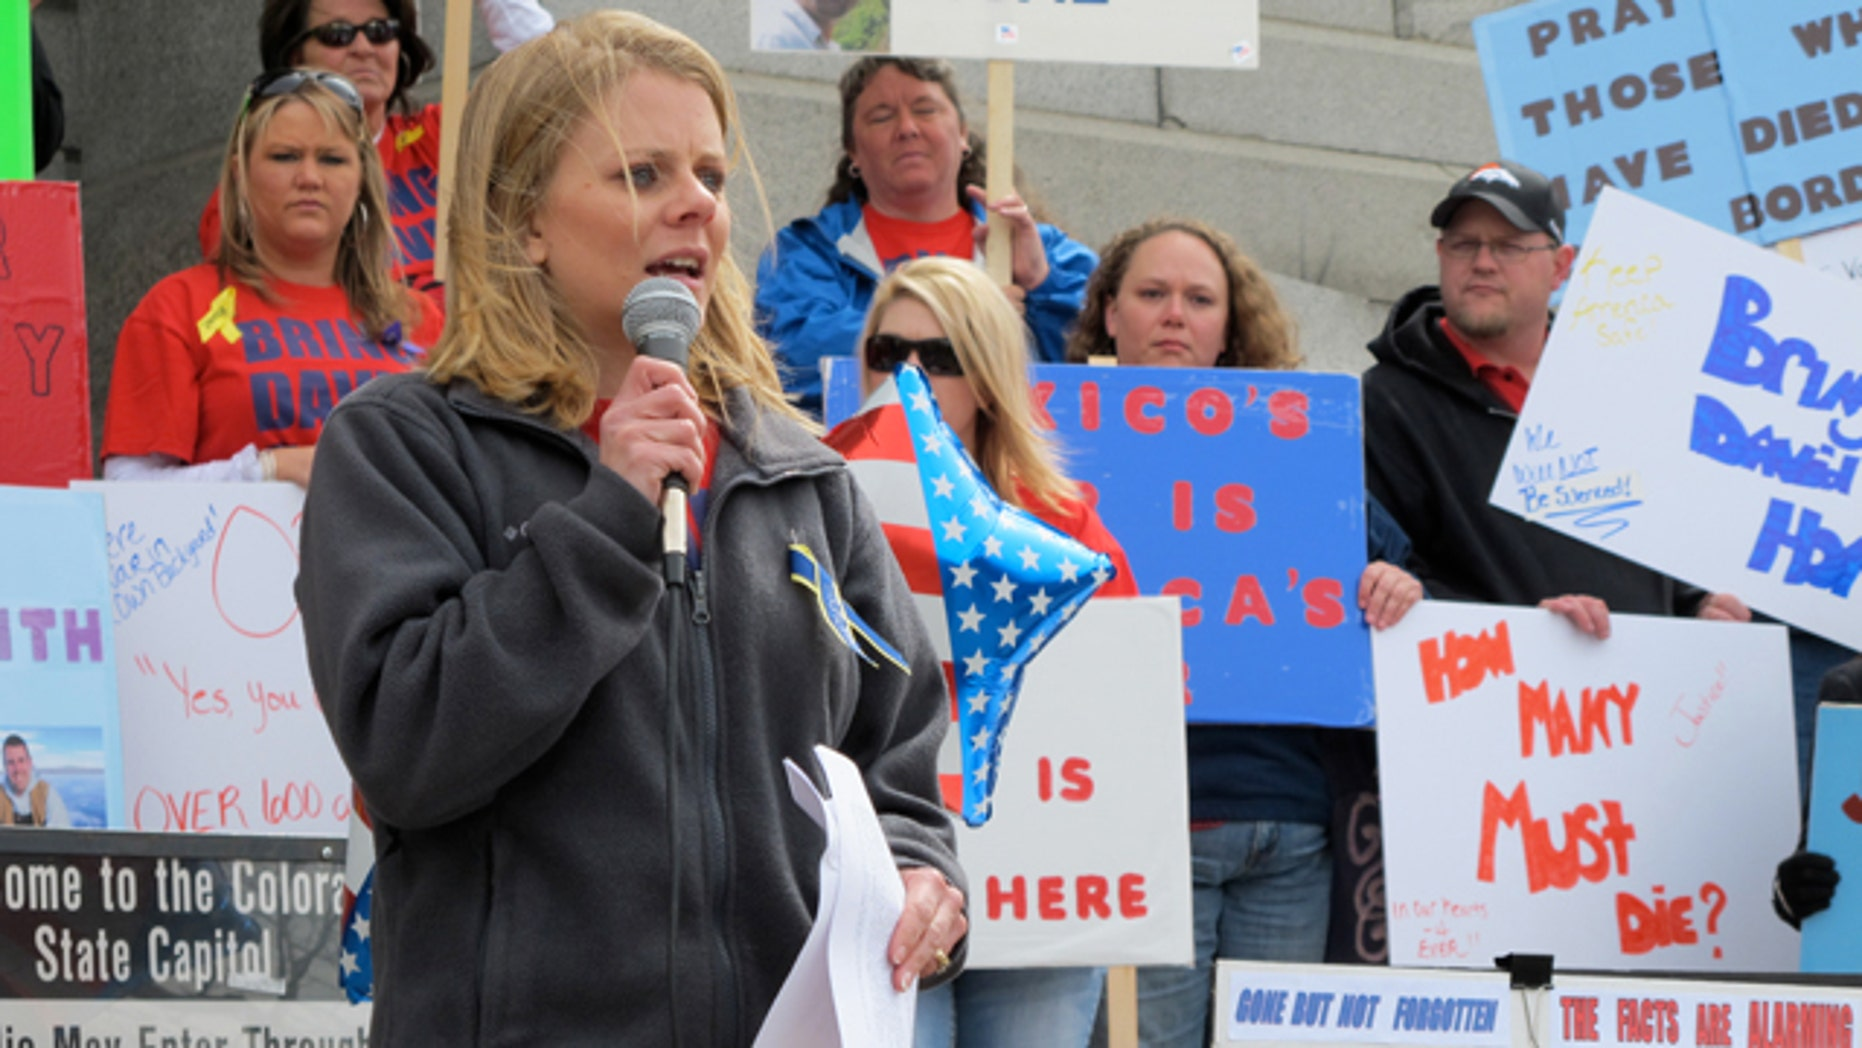 Tiffany Hartley speaks to a rally on the steps of the Colorado State Capitol in Denver.